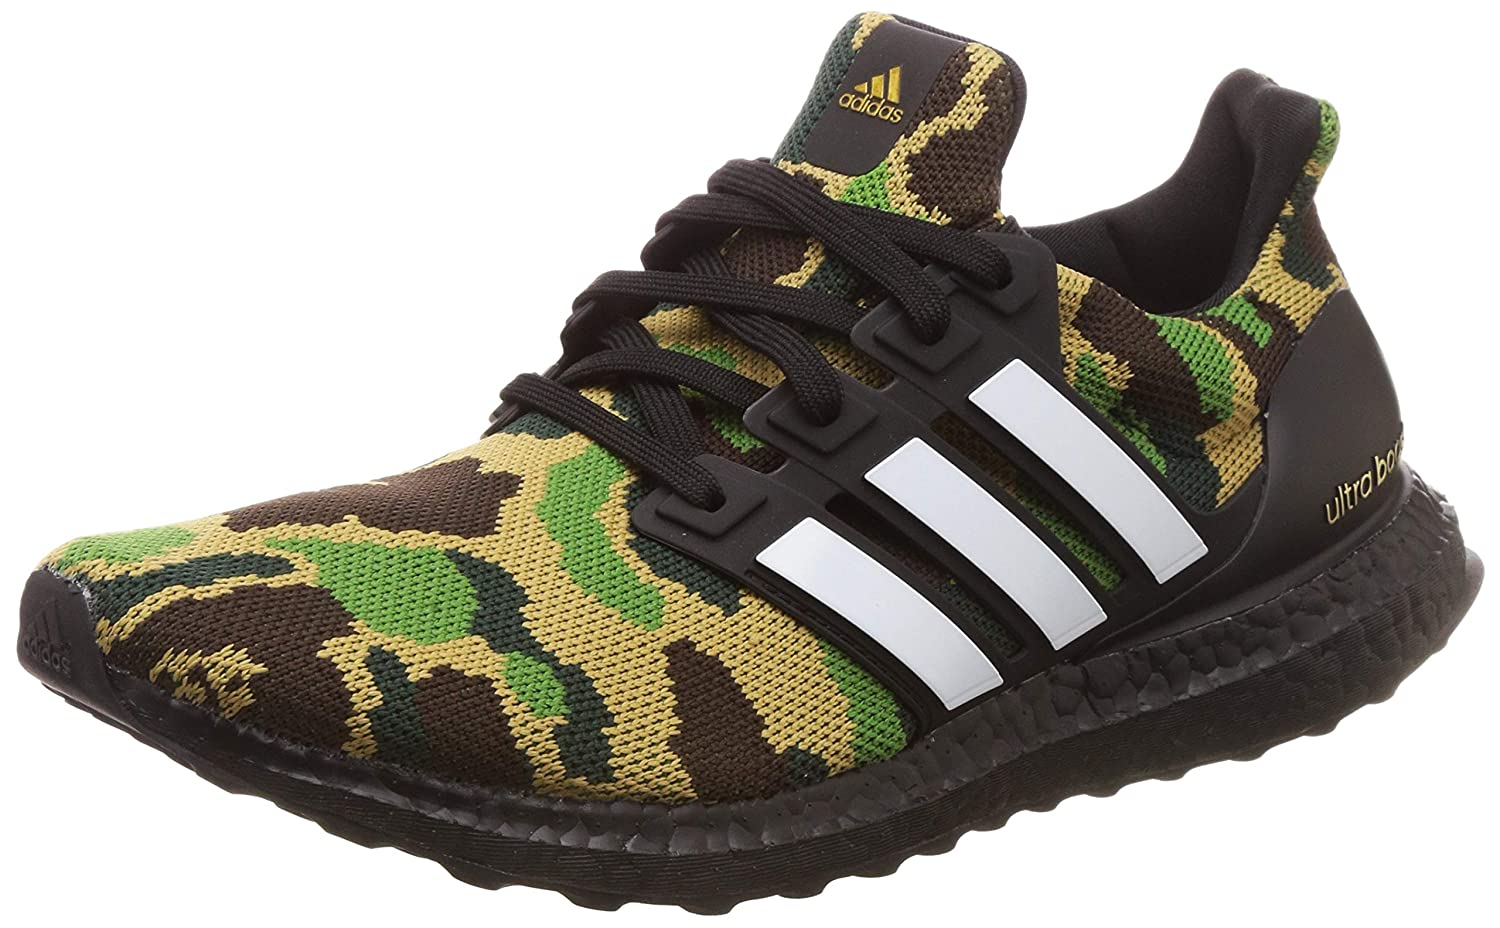 Legerprint Legerprint Legerprint Schoenen Adidas Adidas